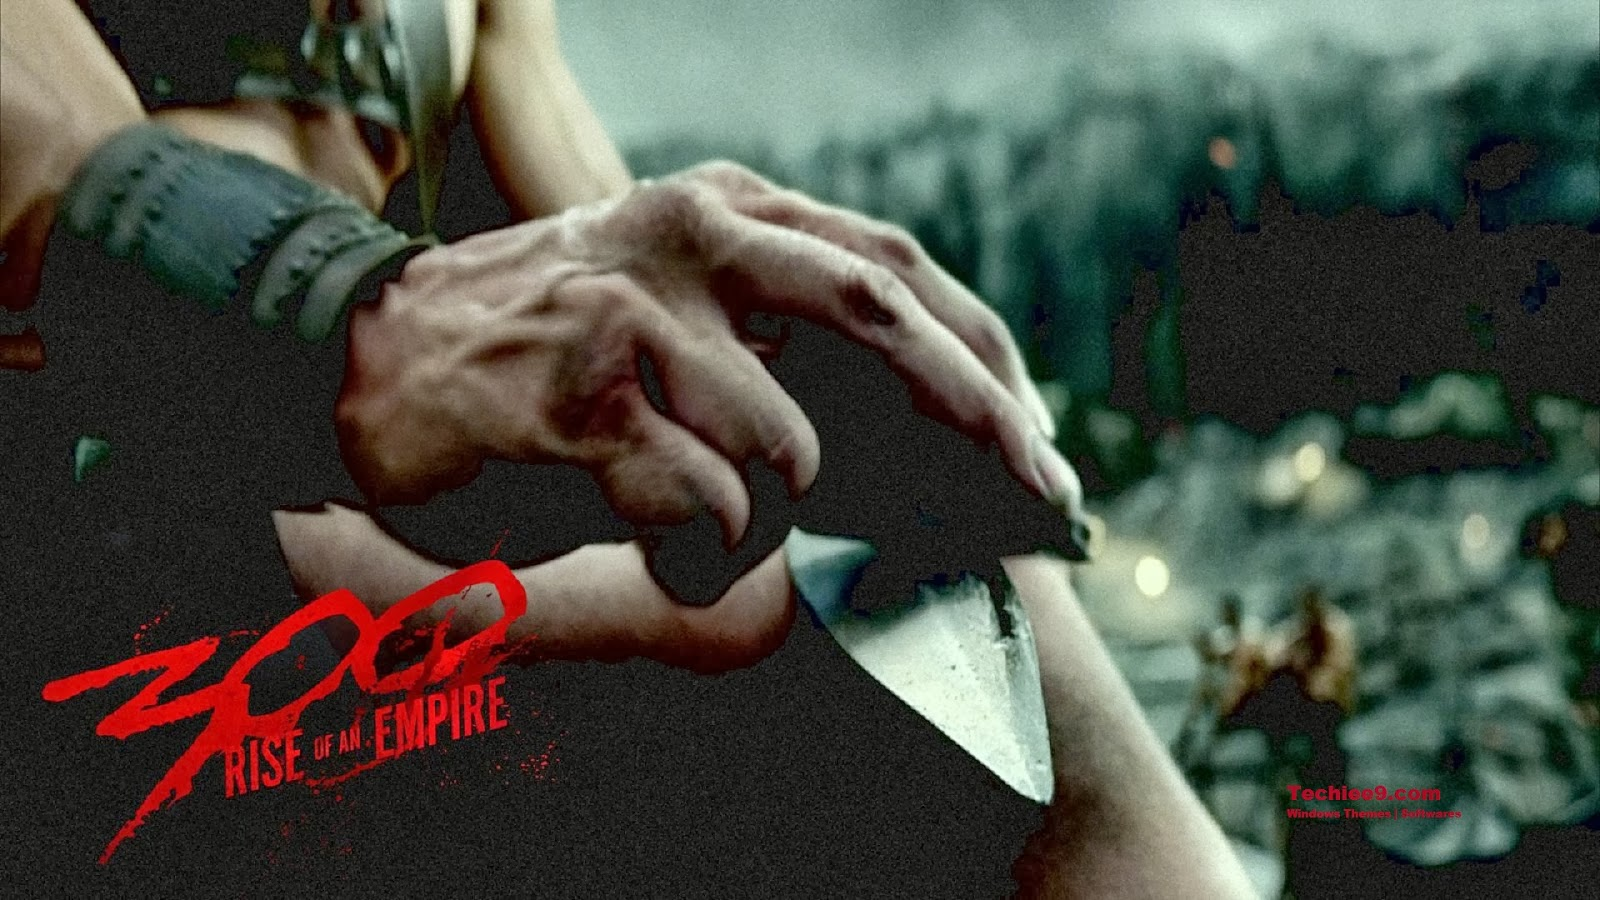 download 300 rise of an empire 2014 latest movie theme full hd